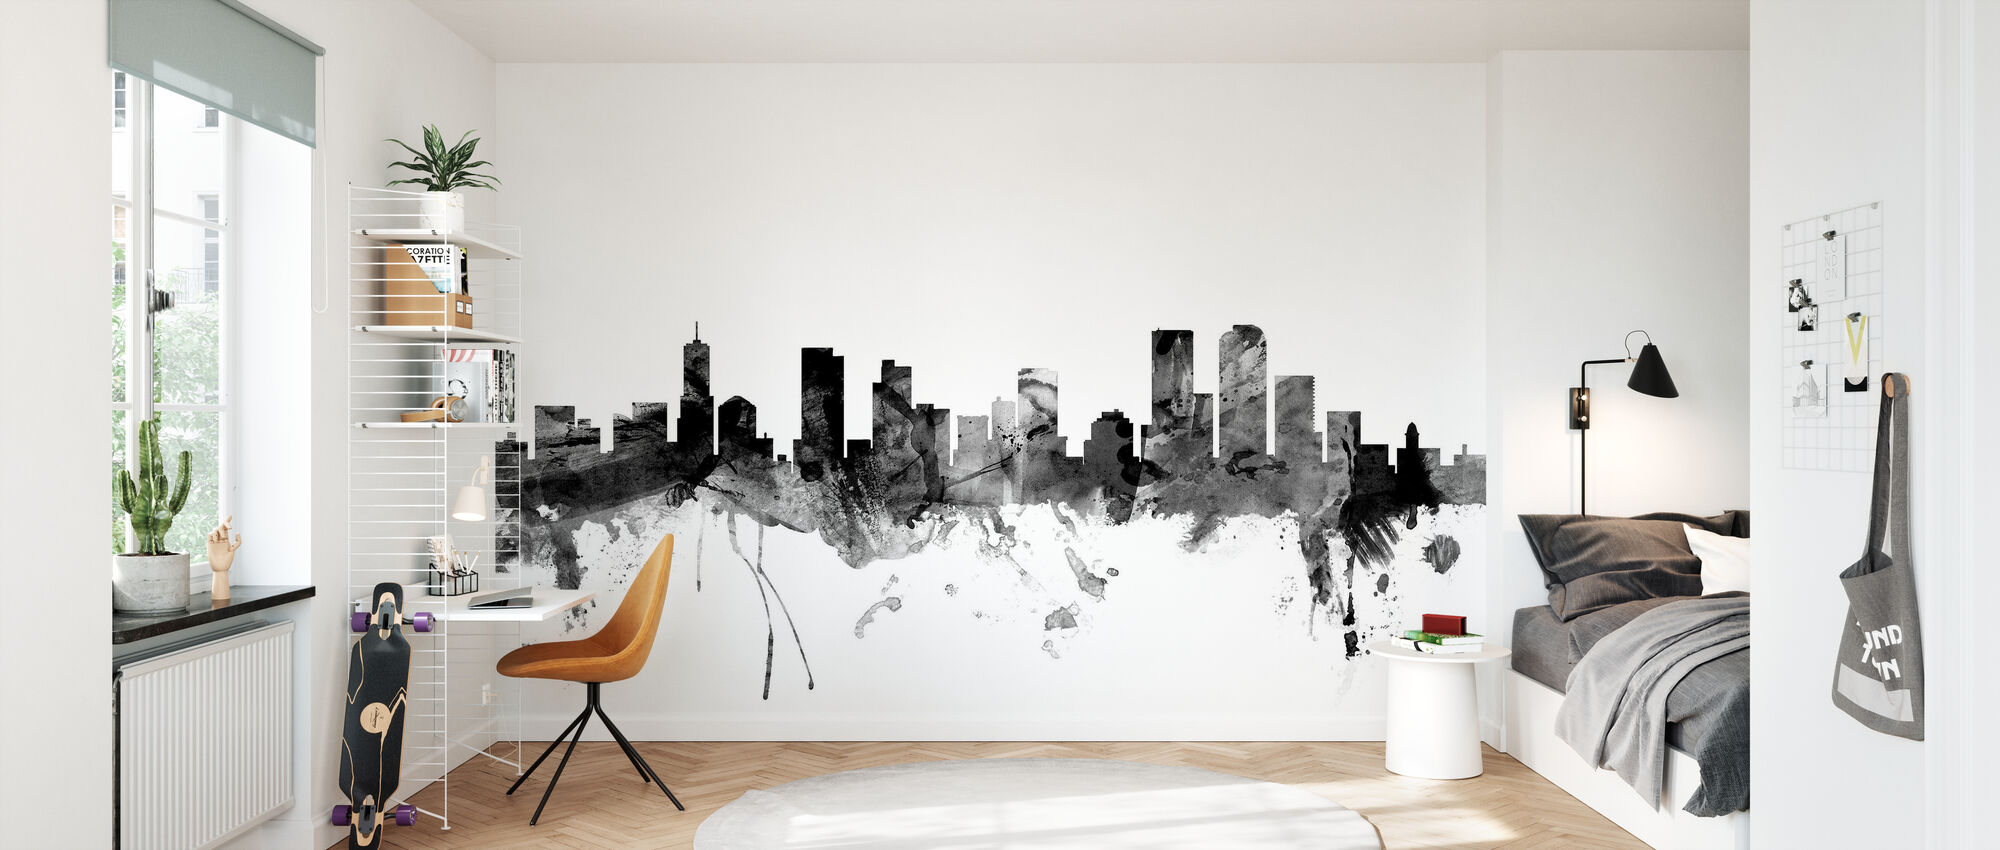 Denver Colorado Skyline Black - Wallpaper - Kids Room